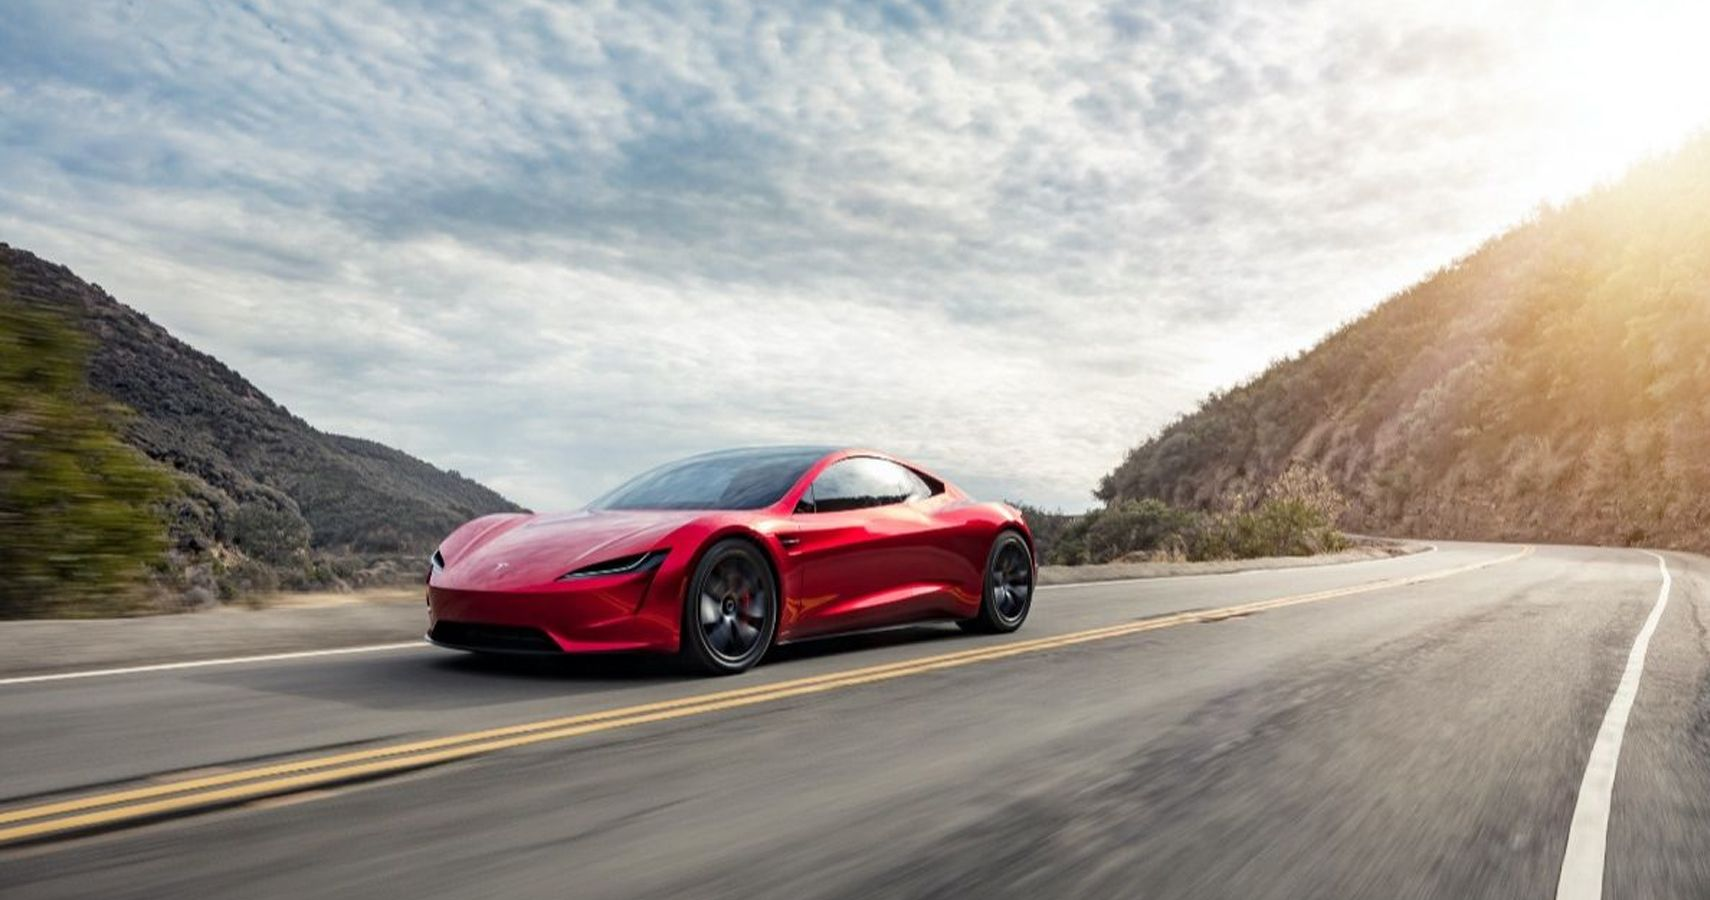 New Tesla Roadster Is Coming To The Petersen Automotive Museum